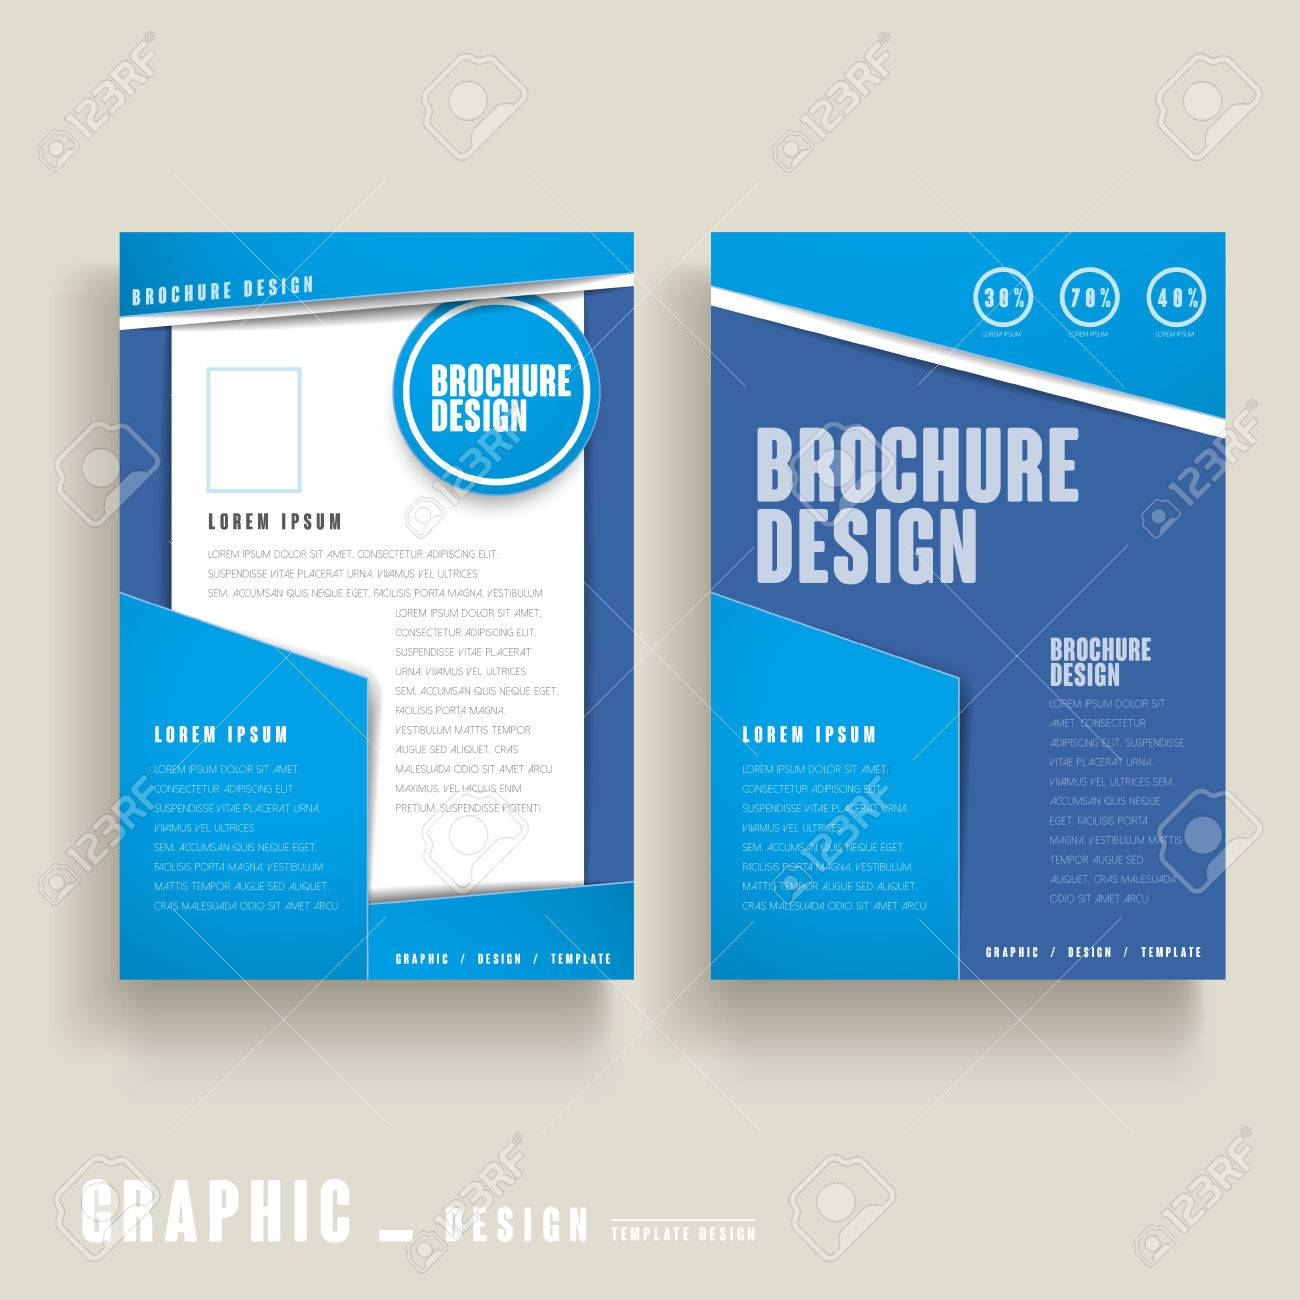 Modern Brochure Template Design In Blue And White Royalty Free - Modern brochure template